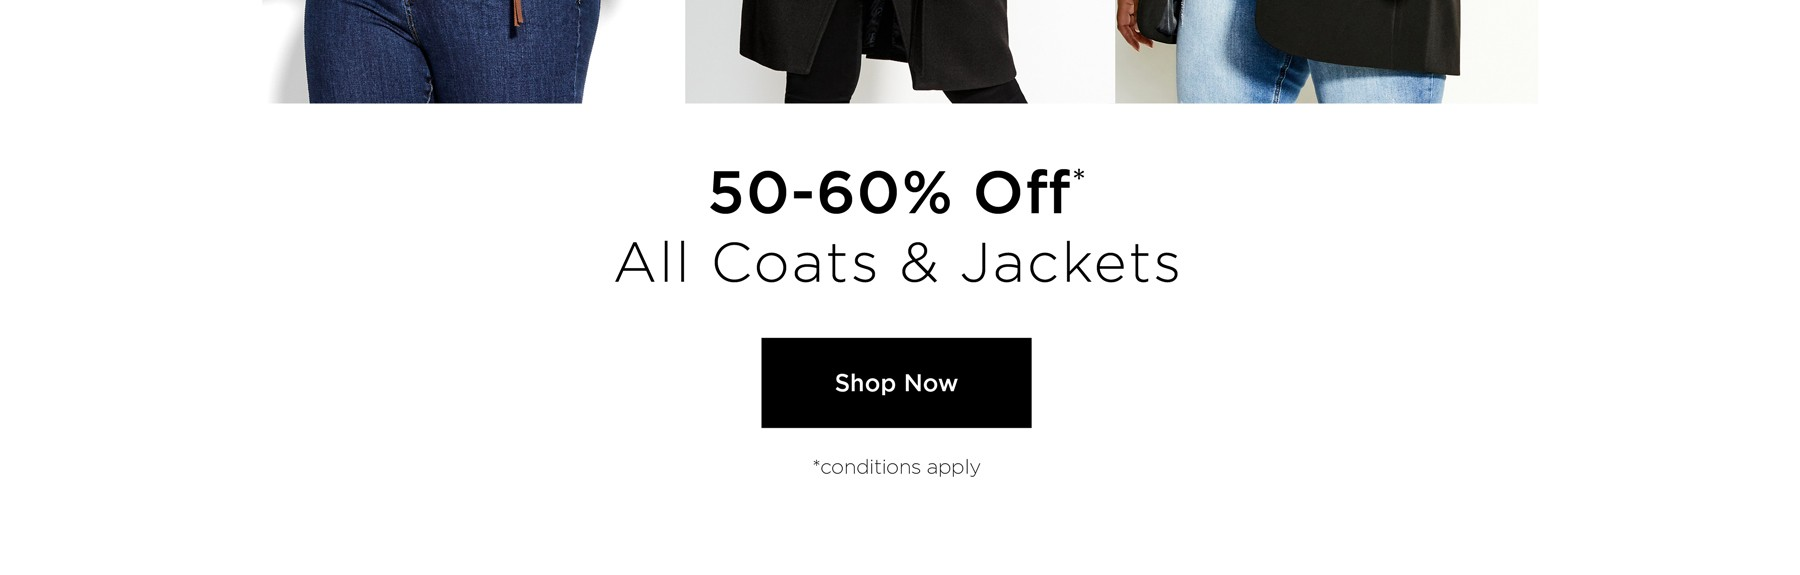 50-60% Off All Coats. Conditions Apply. Shop Now.